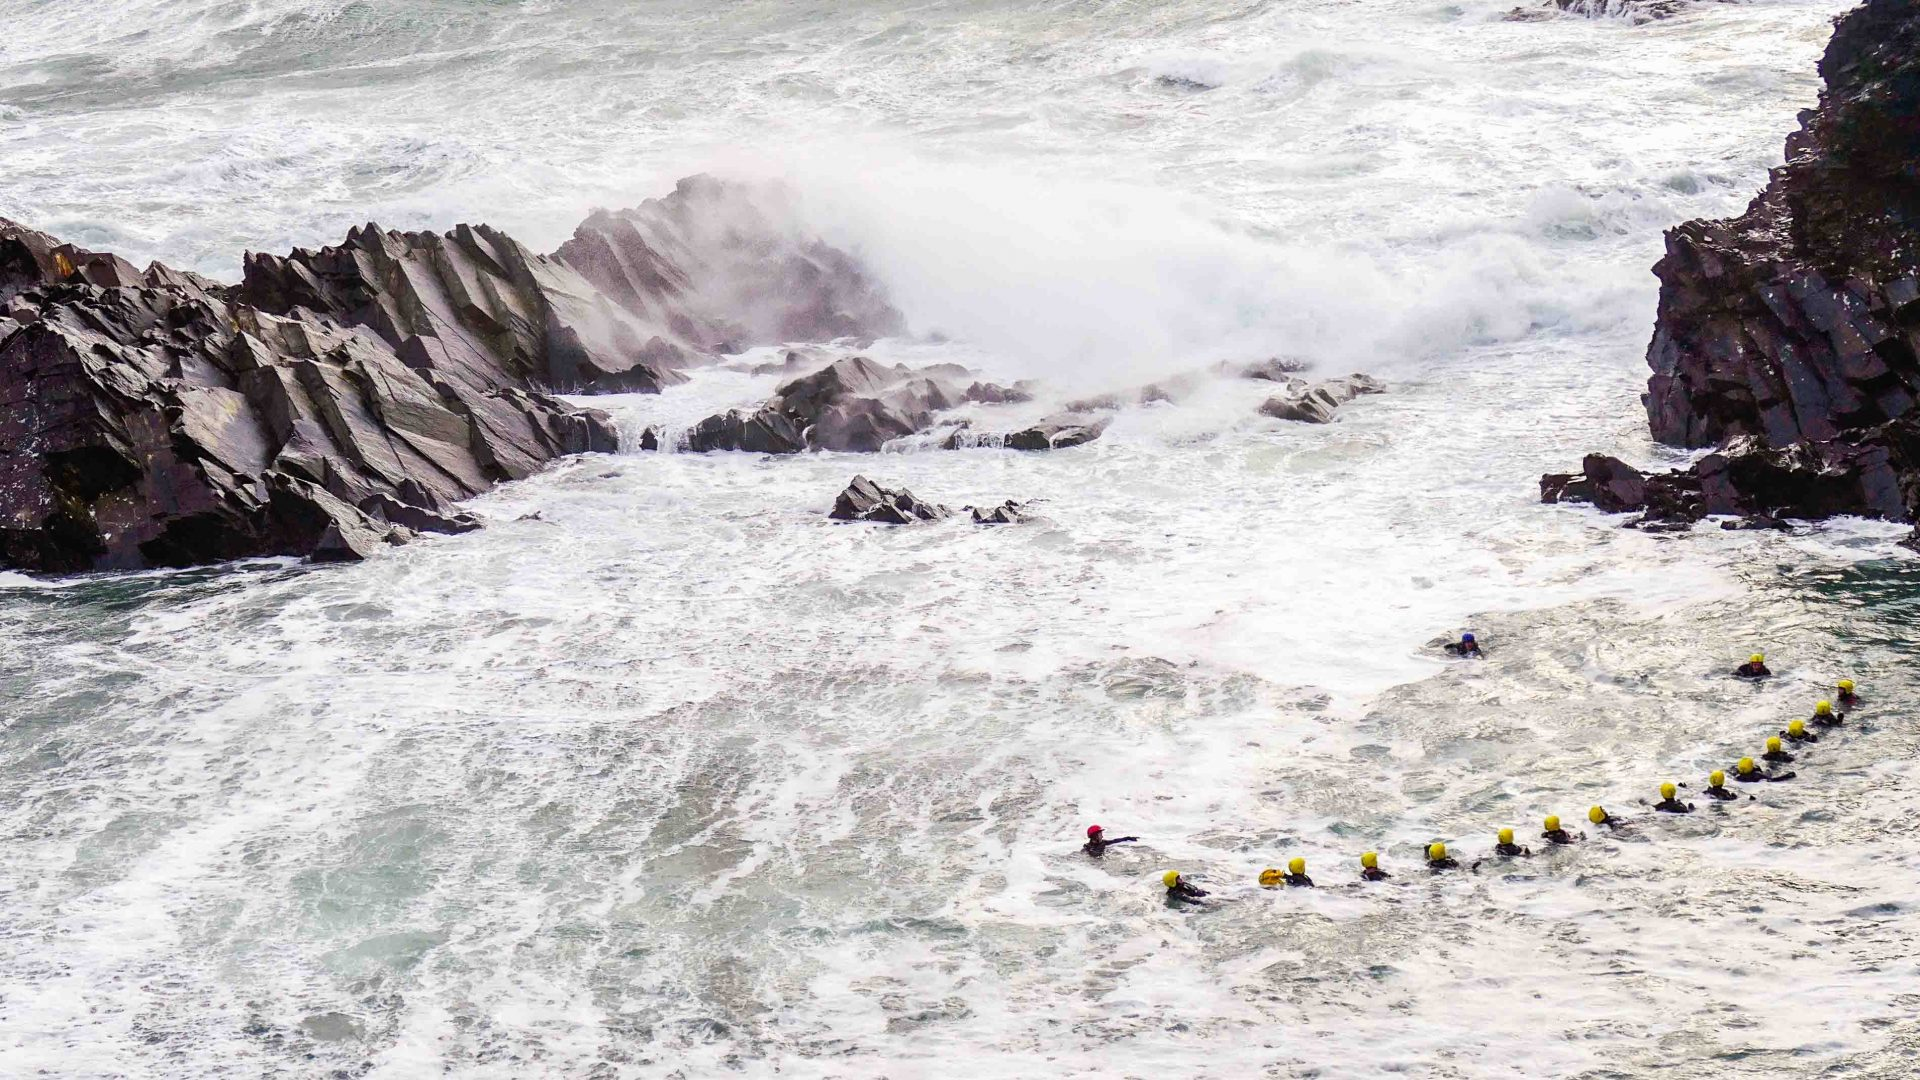 Clients in this coasteering adventure look like mere specks in the white wash of the rough sea off the Welsh coast.